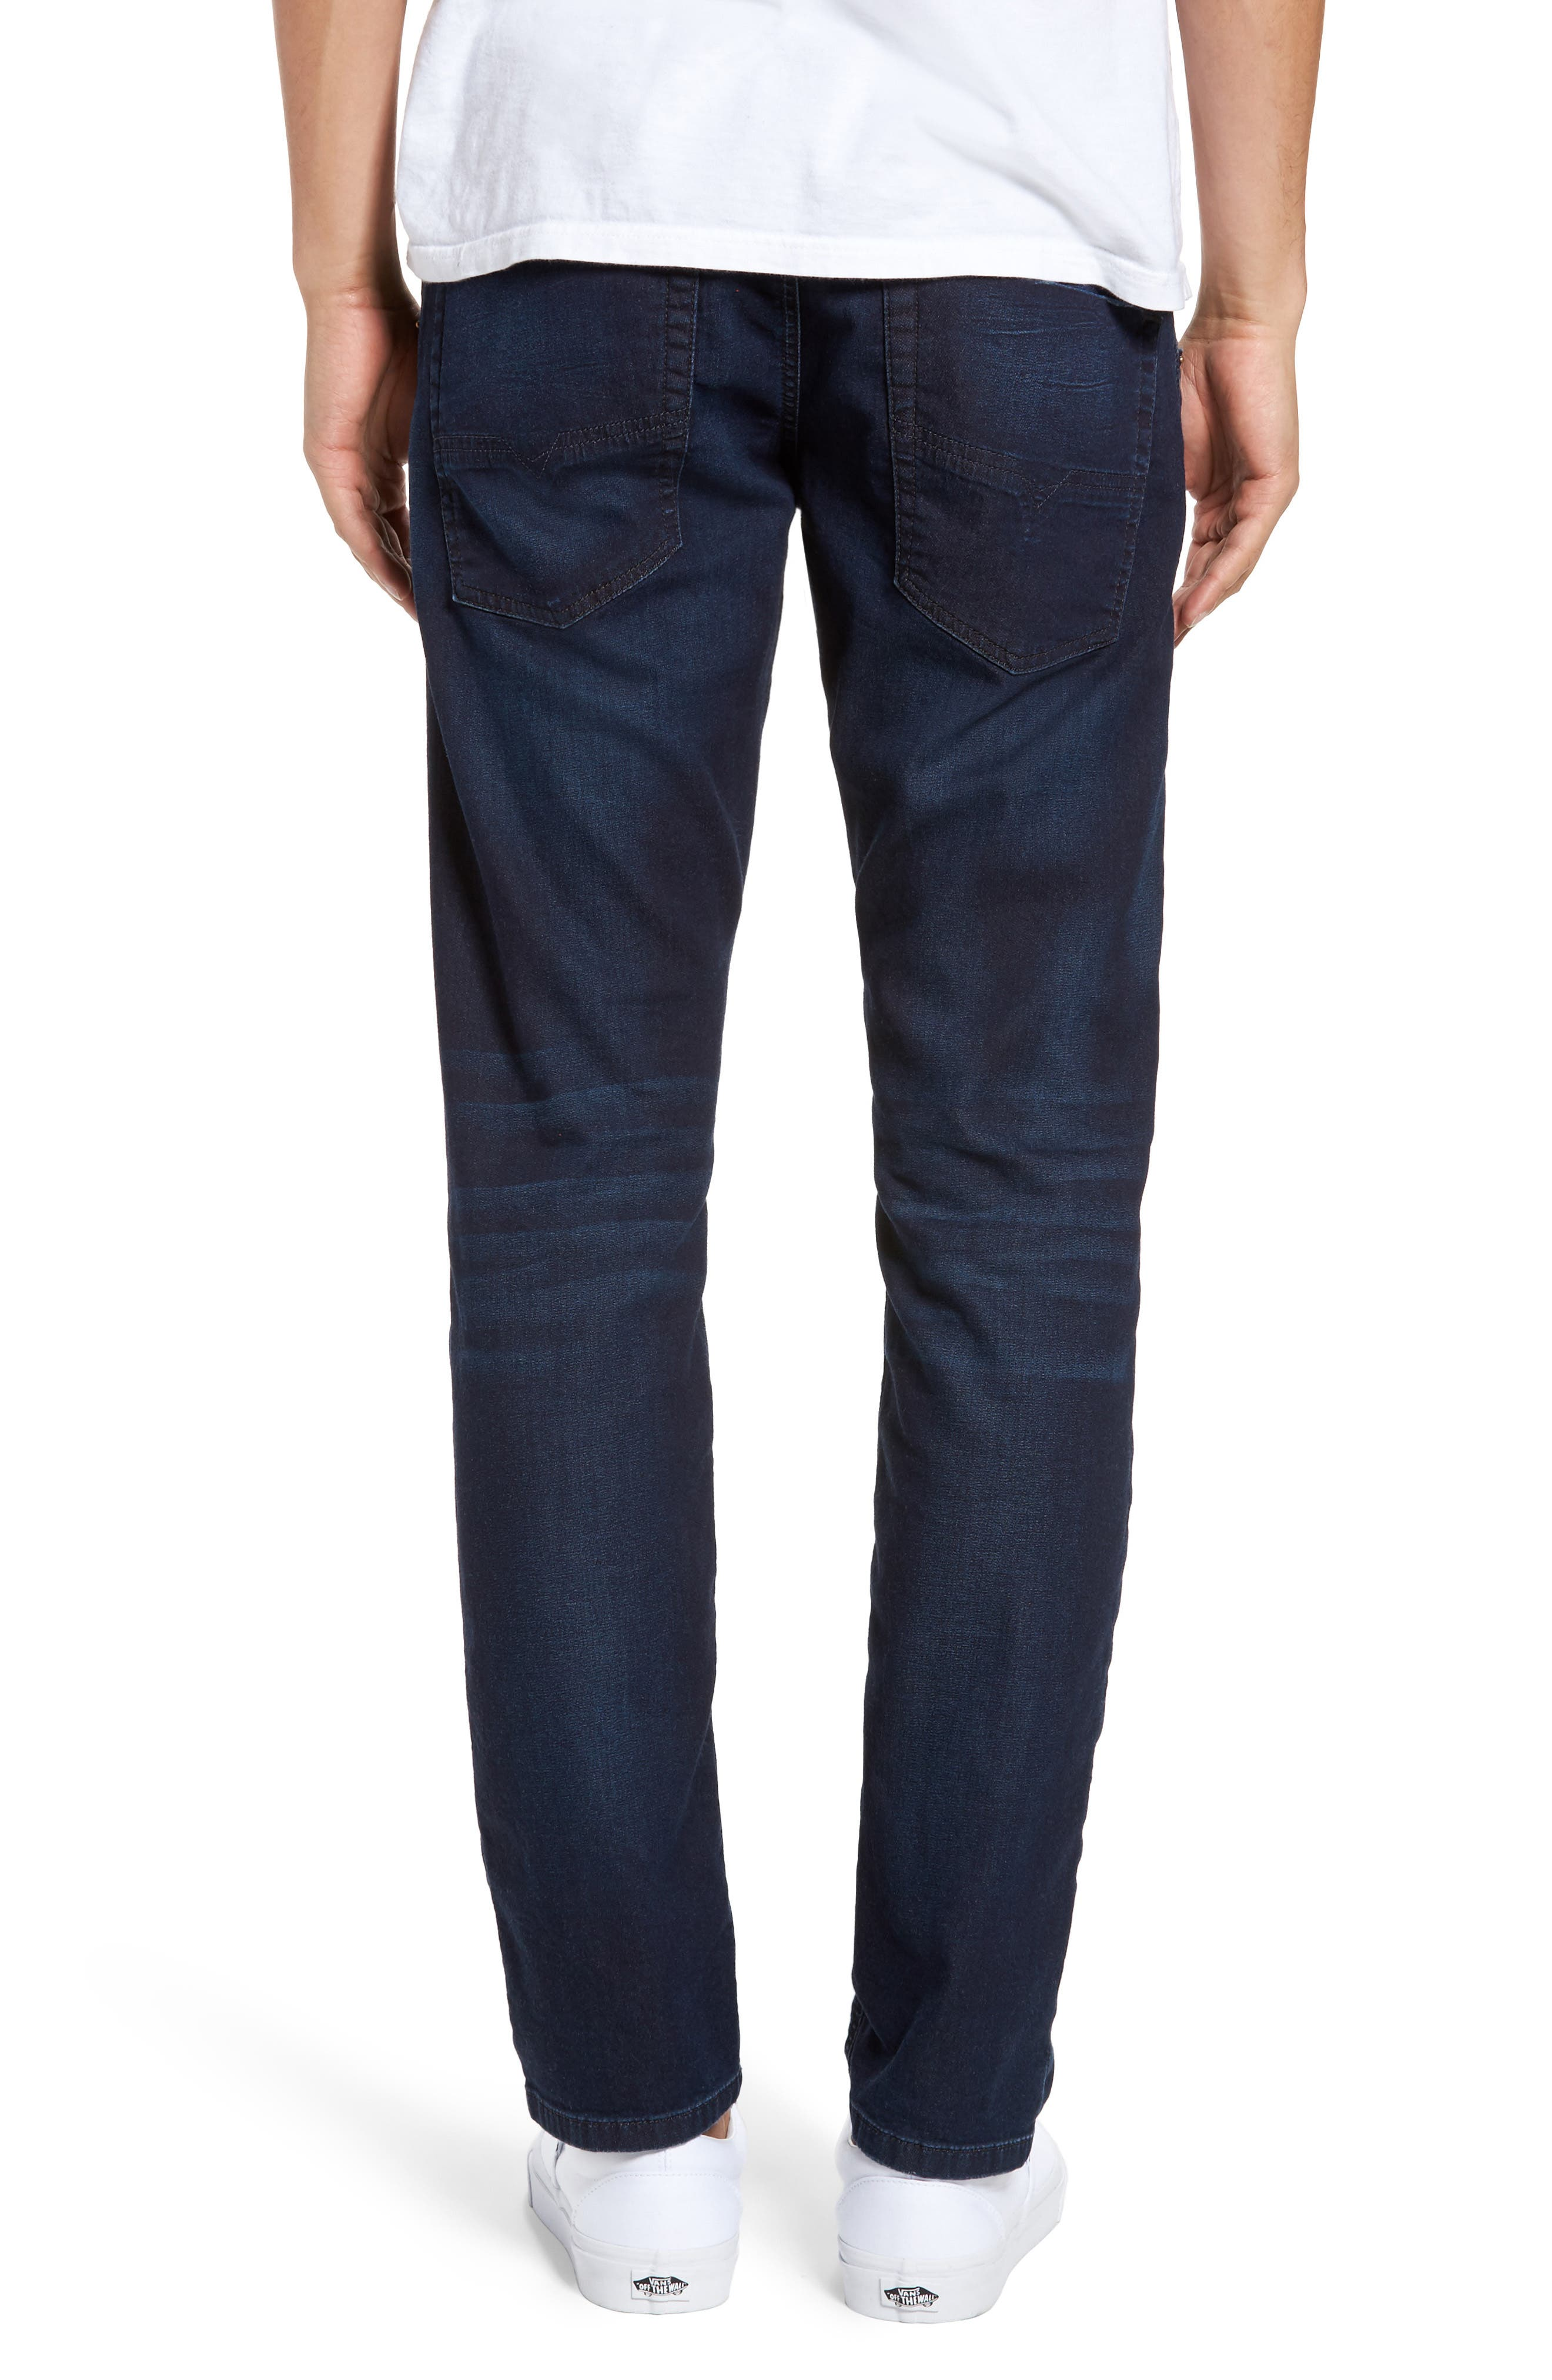 Krooley Slouchy Skinny Jeans,                             Alternate thumbnail 2, color,                             900